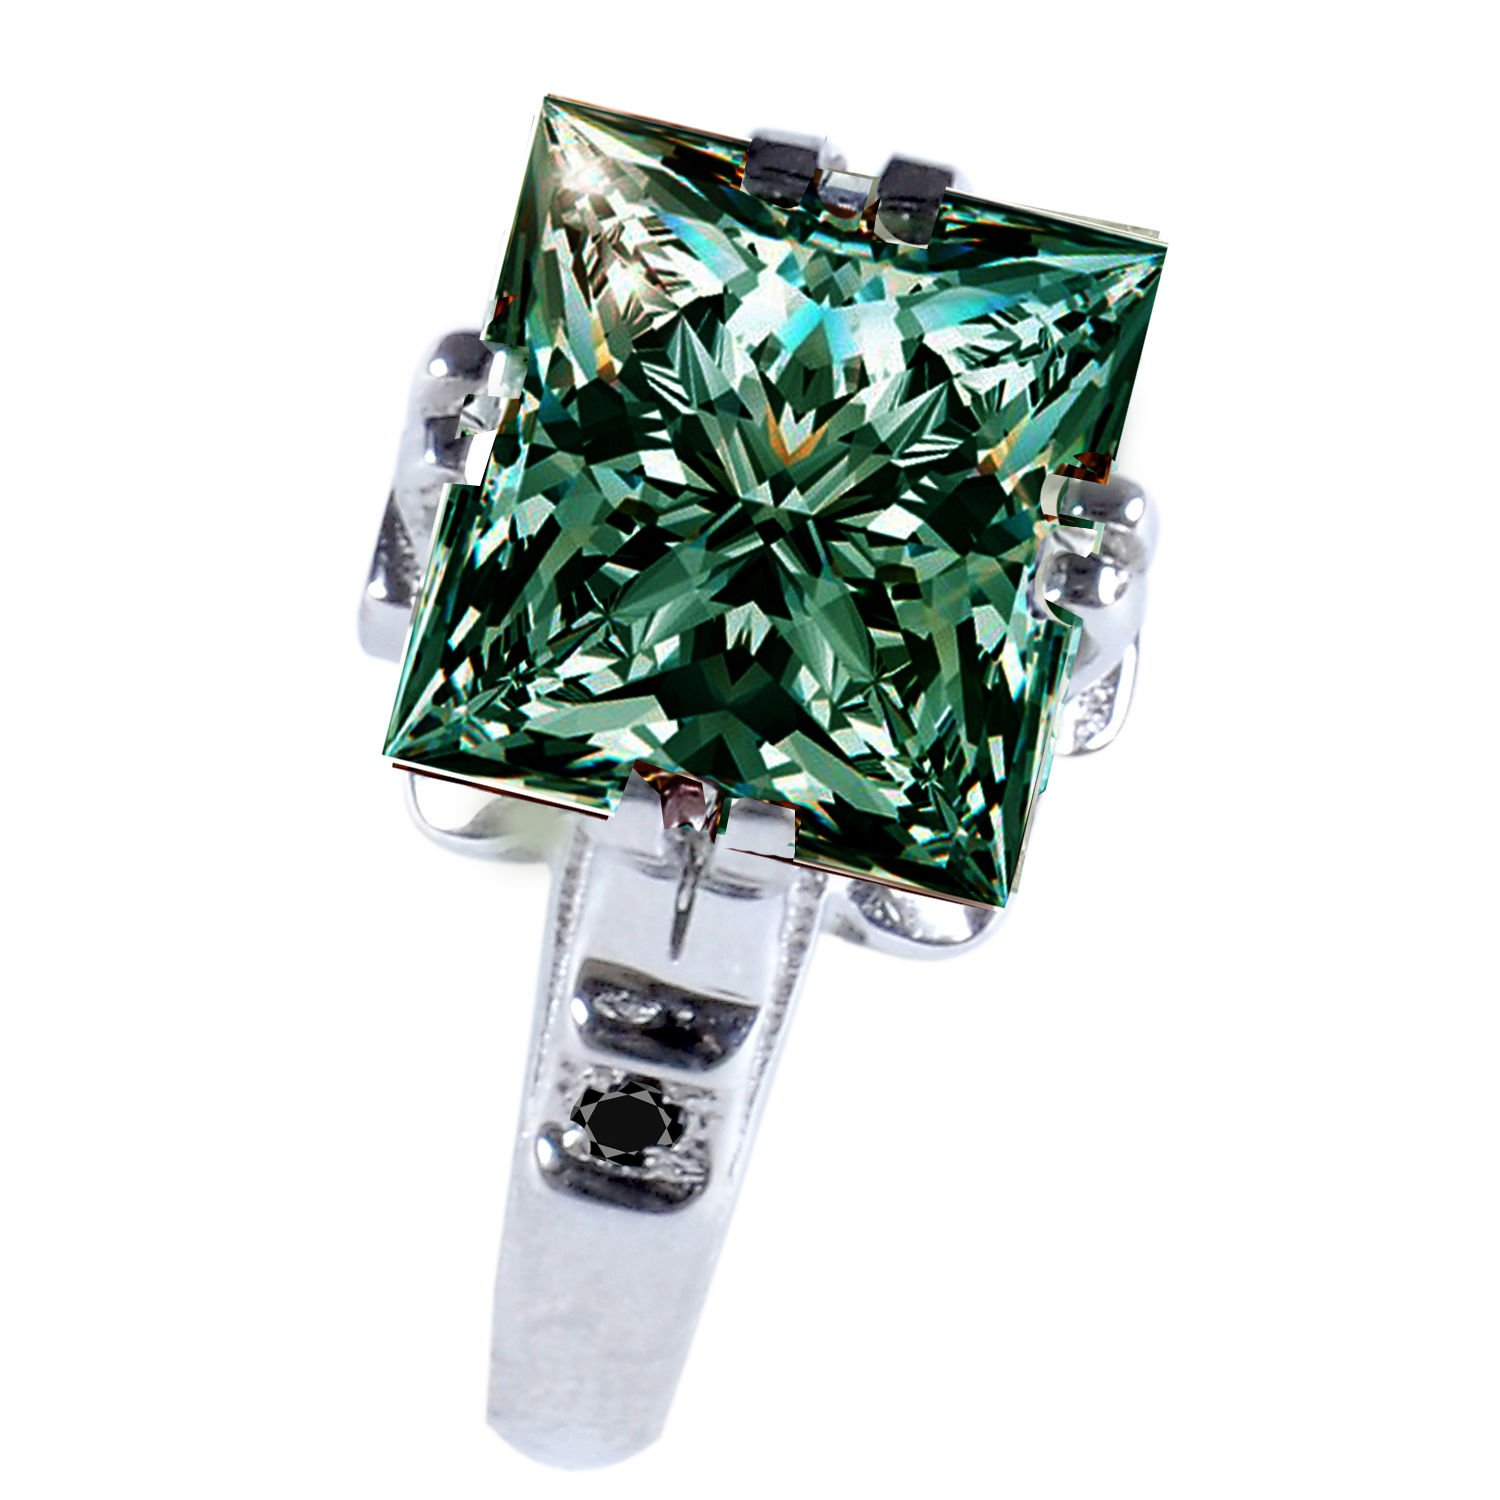 RINGJEWEL 5.12 ct VVS1 Princess Moissanite Solitaire Engagement Silver Plated Ring Green Color Size 7